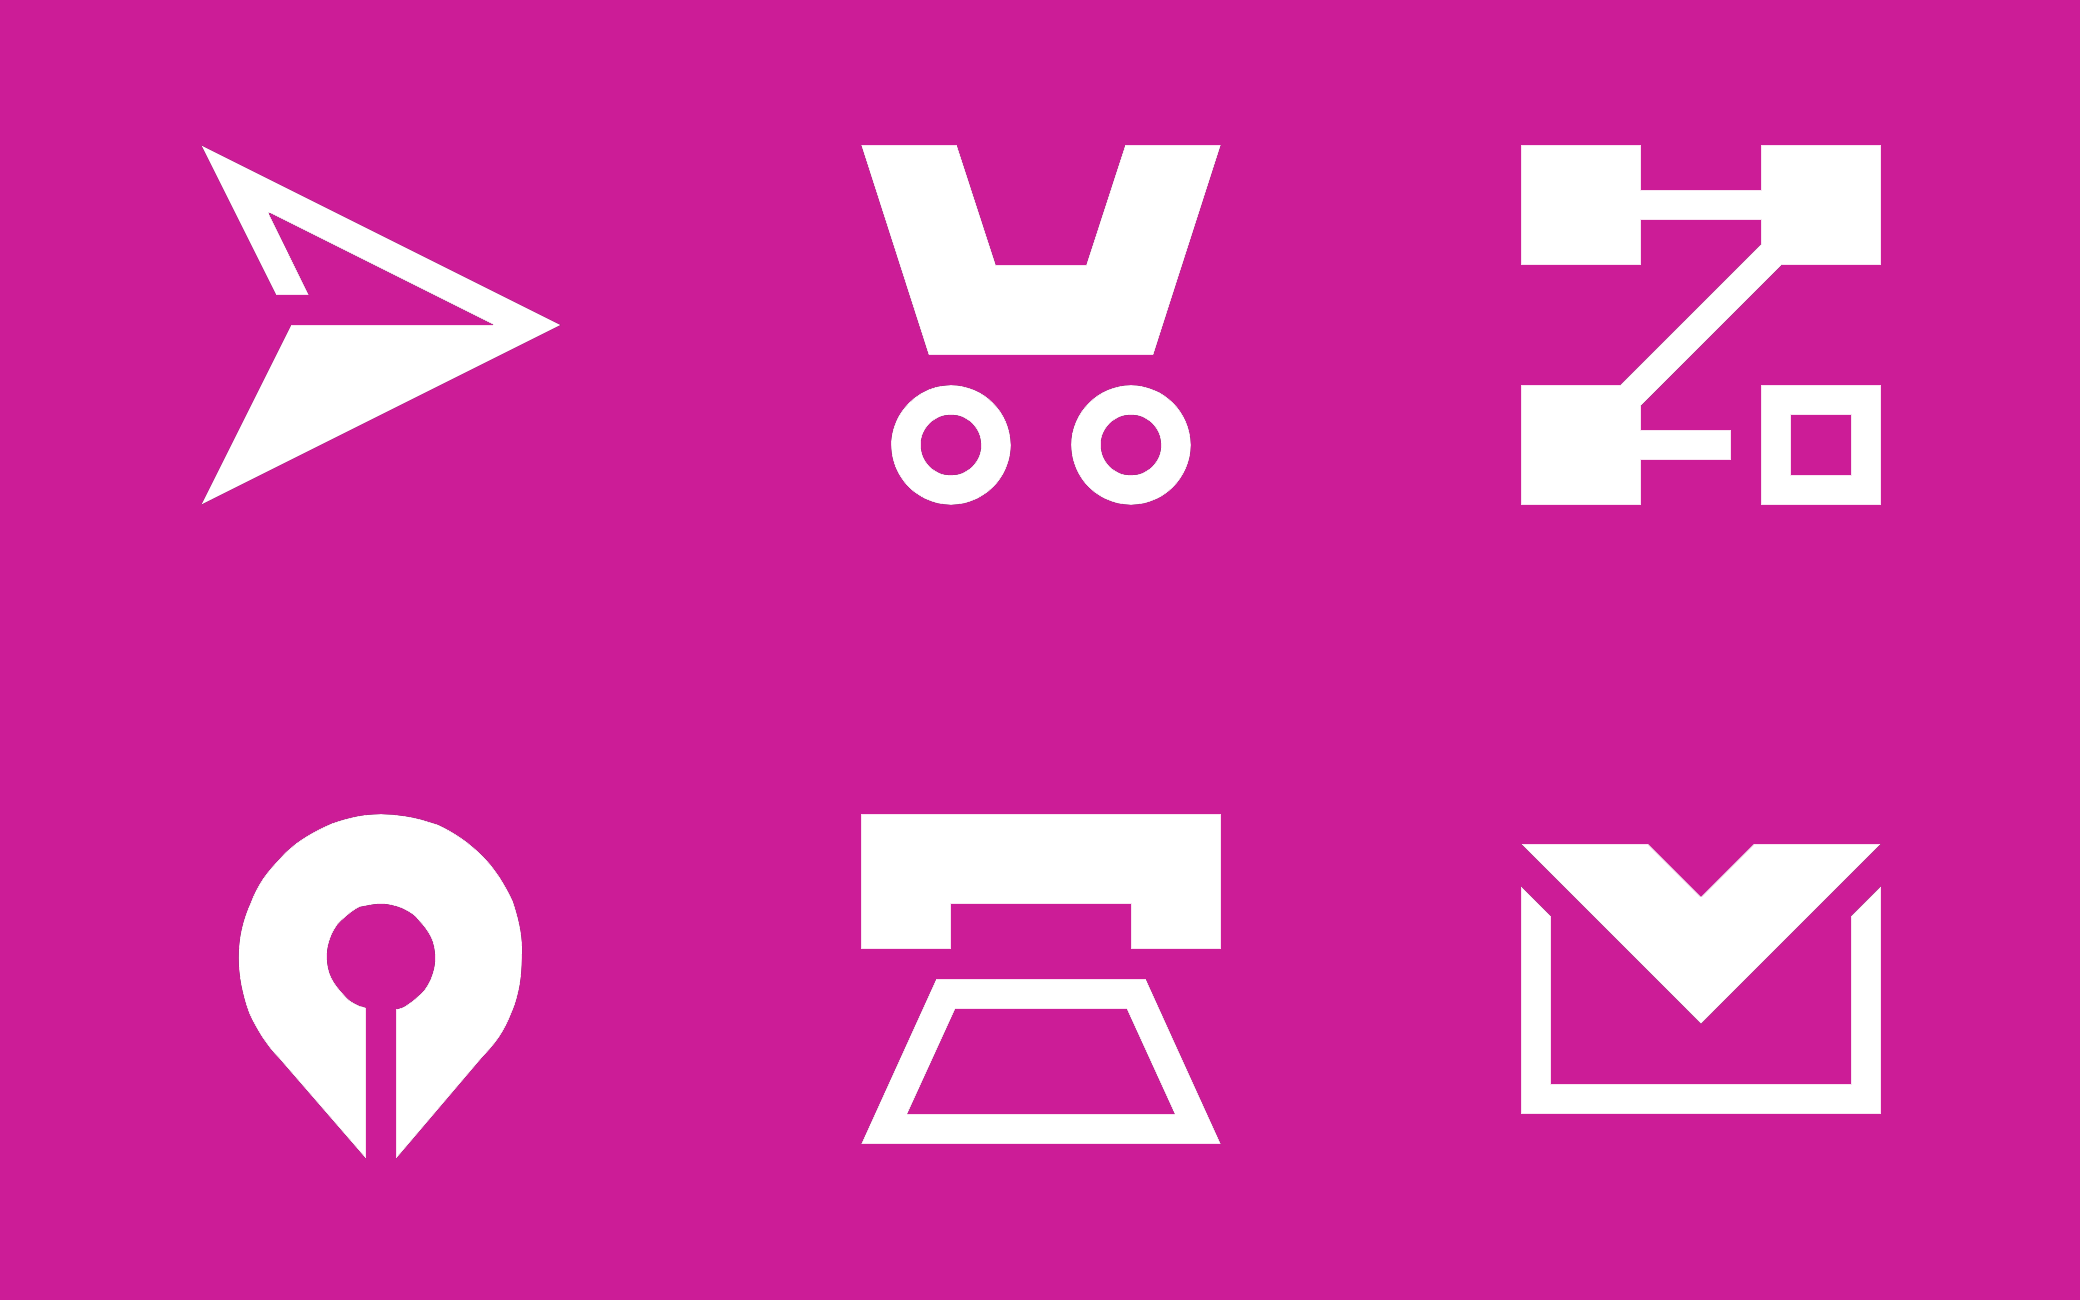 2080x1300 Adobe Has Released Free Vector Icons, Created By Leading Designers